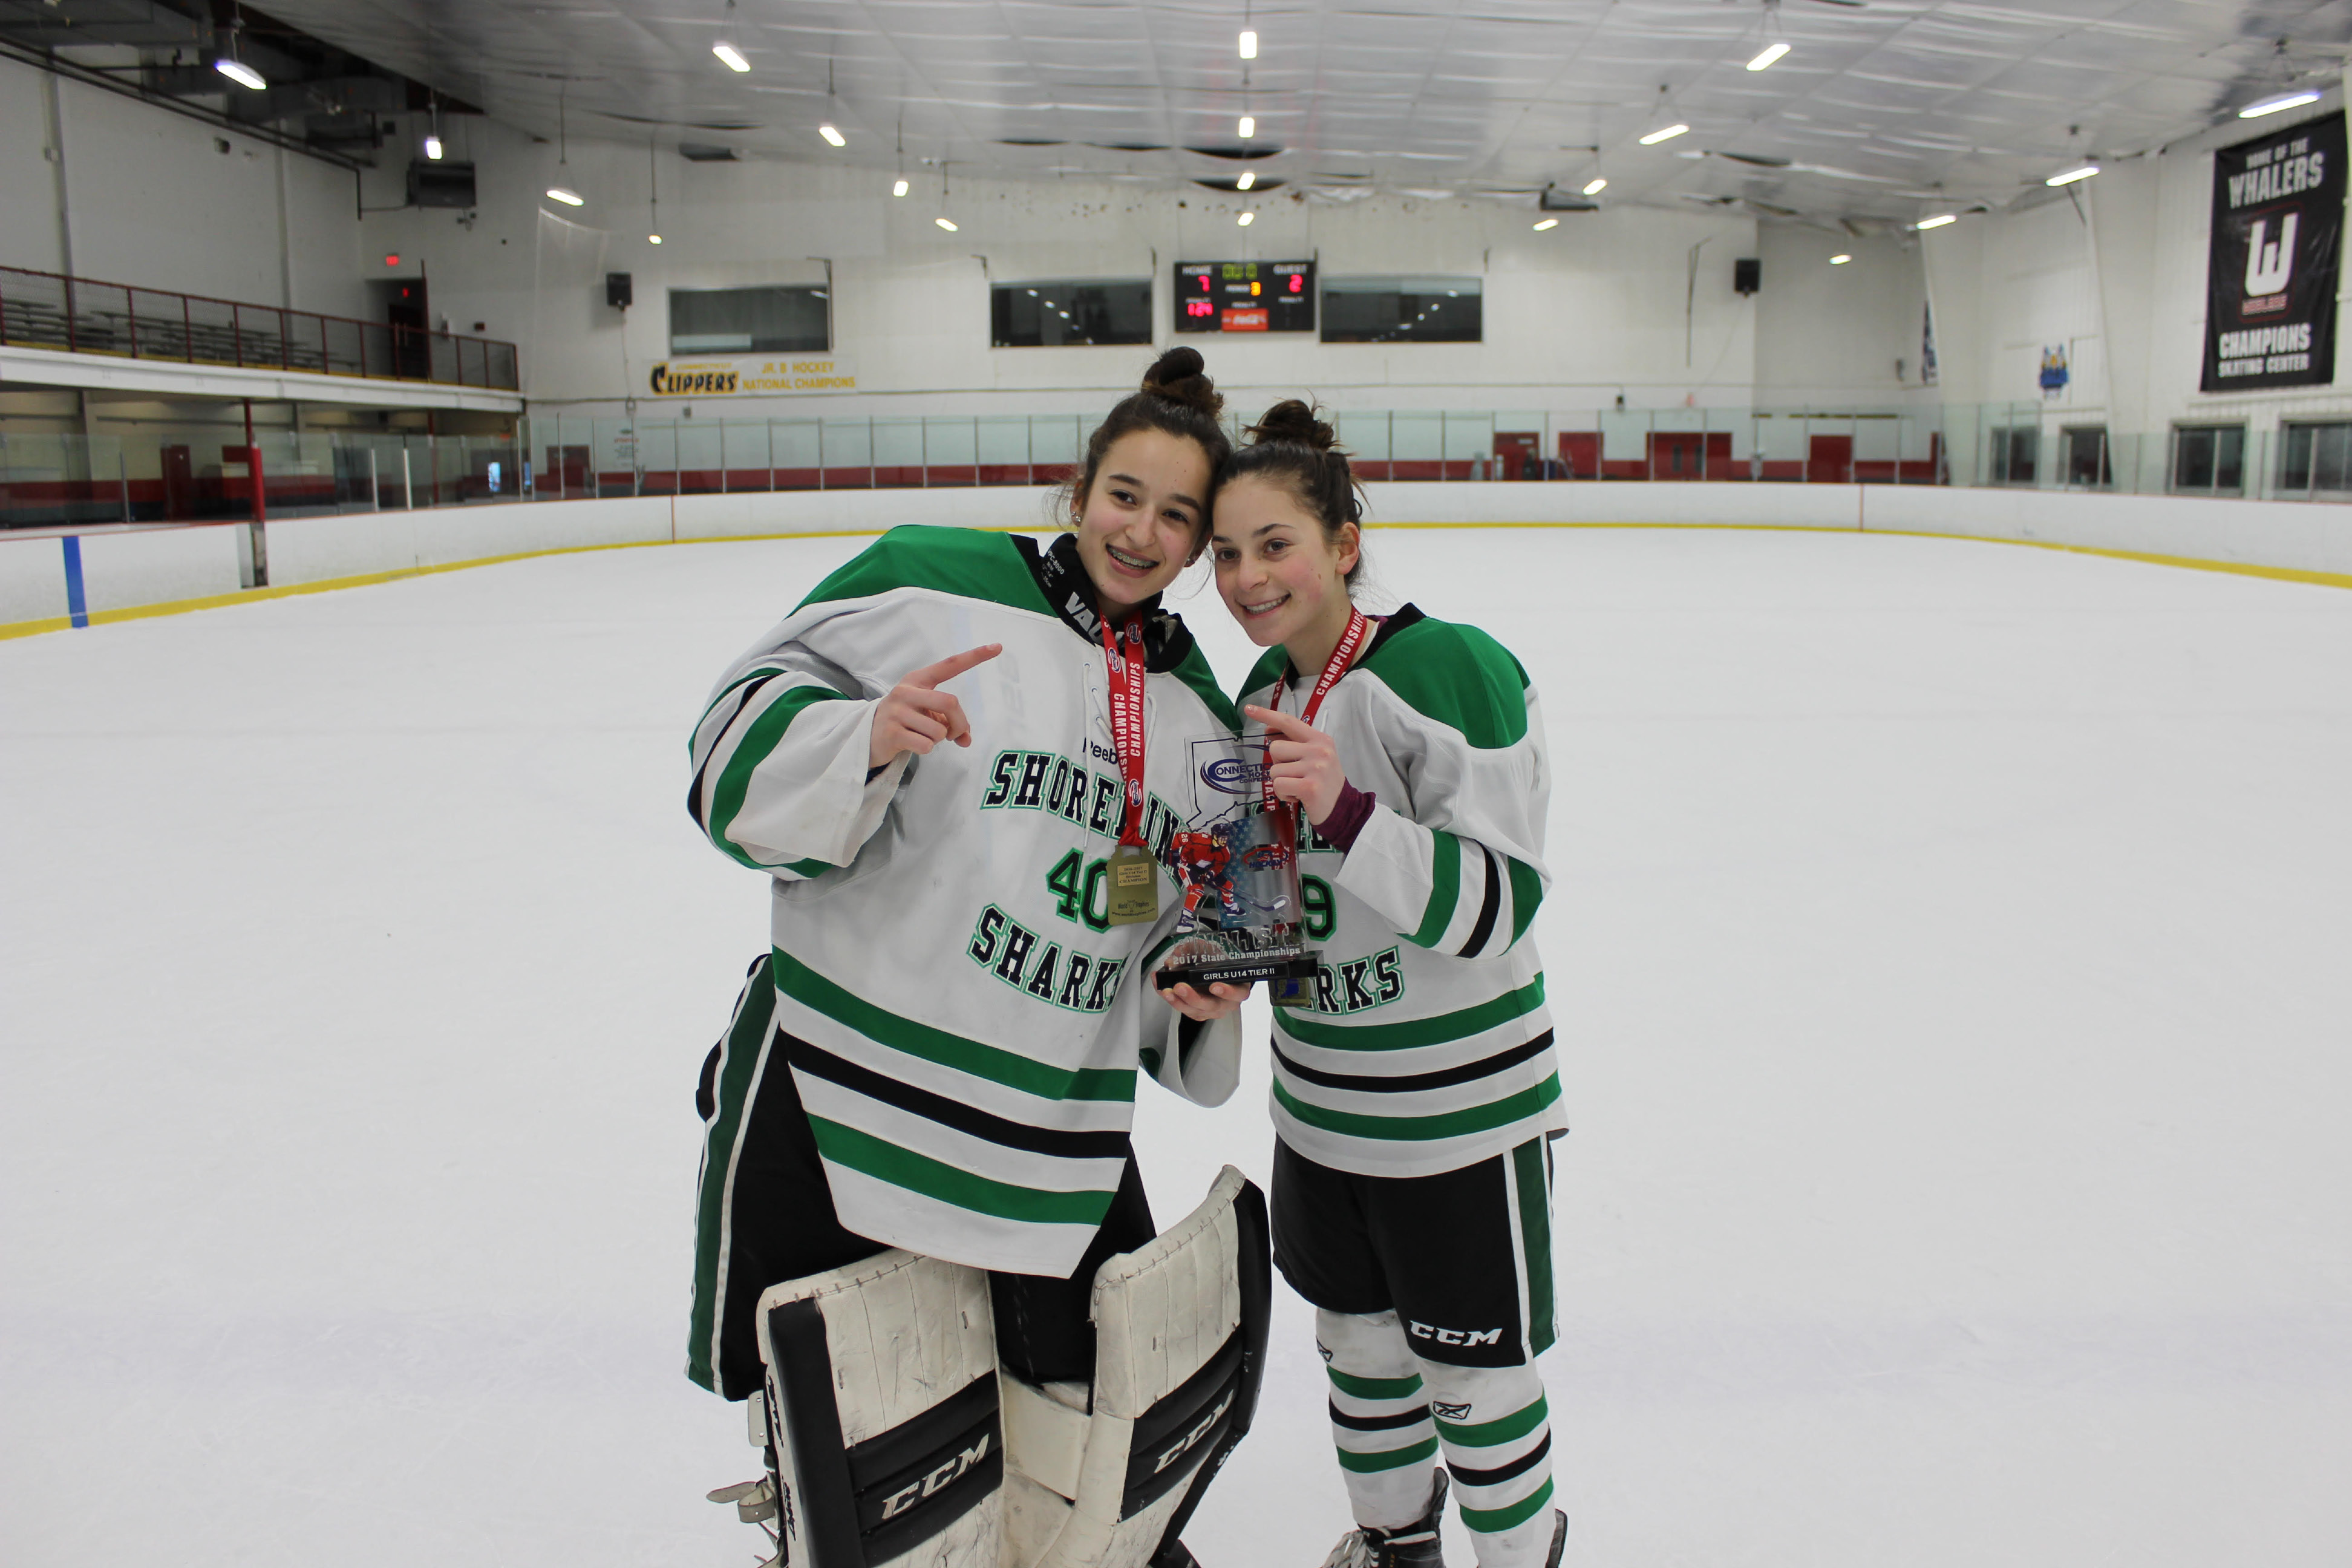 Local hockey players Carina Mancini, left, of Middlefield, and Claire Gavin of Durham pose with the U14 Girls Tier 2 State Championship trophy. Mancini and Gavin play for the Shoreline Sharks organization based in East Haven.  The Sharks defeated the Darien Ice Cats 7-2 Sunday, March 4 at Champions Skating Center in Cromwell. With the win, the Sharks, now representing Connecticut, advance to Regionals in Maine. The winner of the Regionals earns a spot in the USA Hockey Nationals in Michigan.